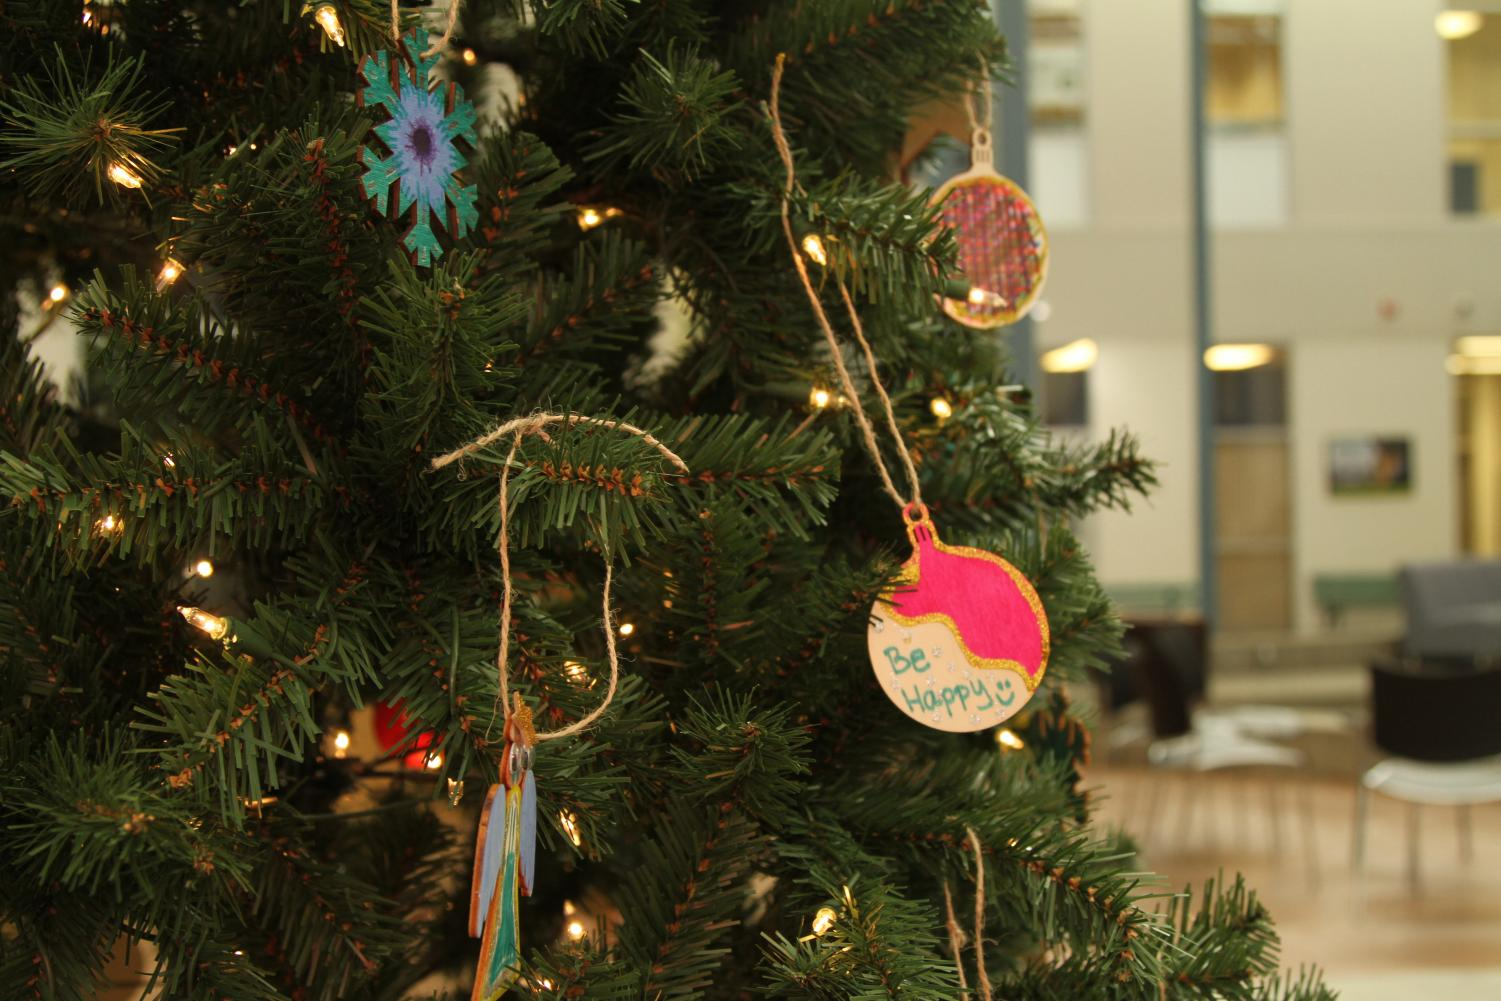 Several student-decorated ornaments hang from the Christmas tree in the school mall.